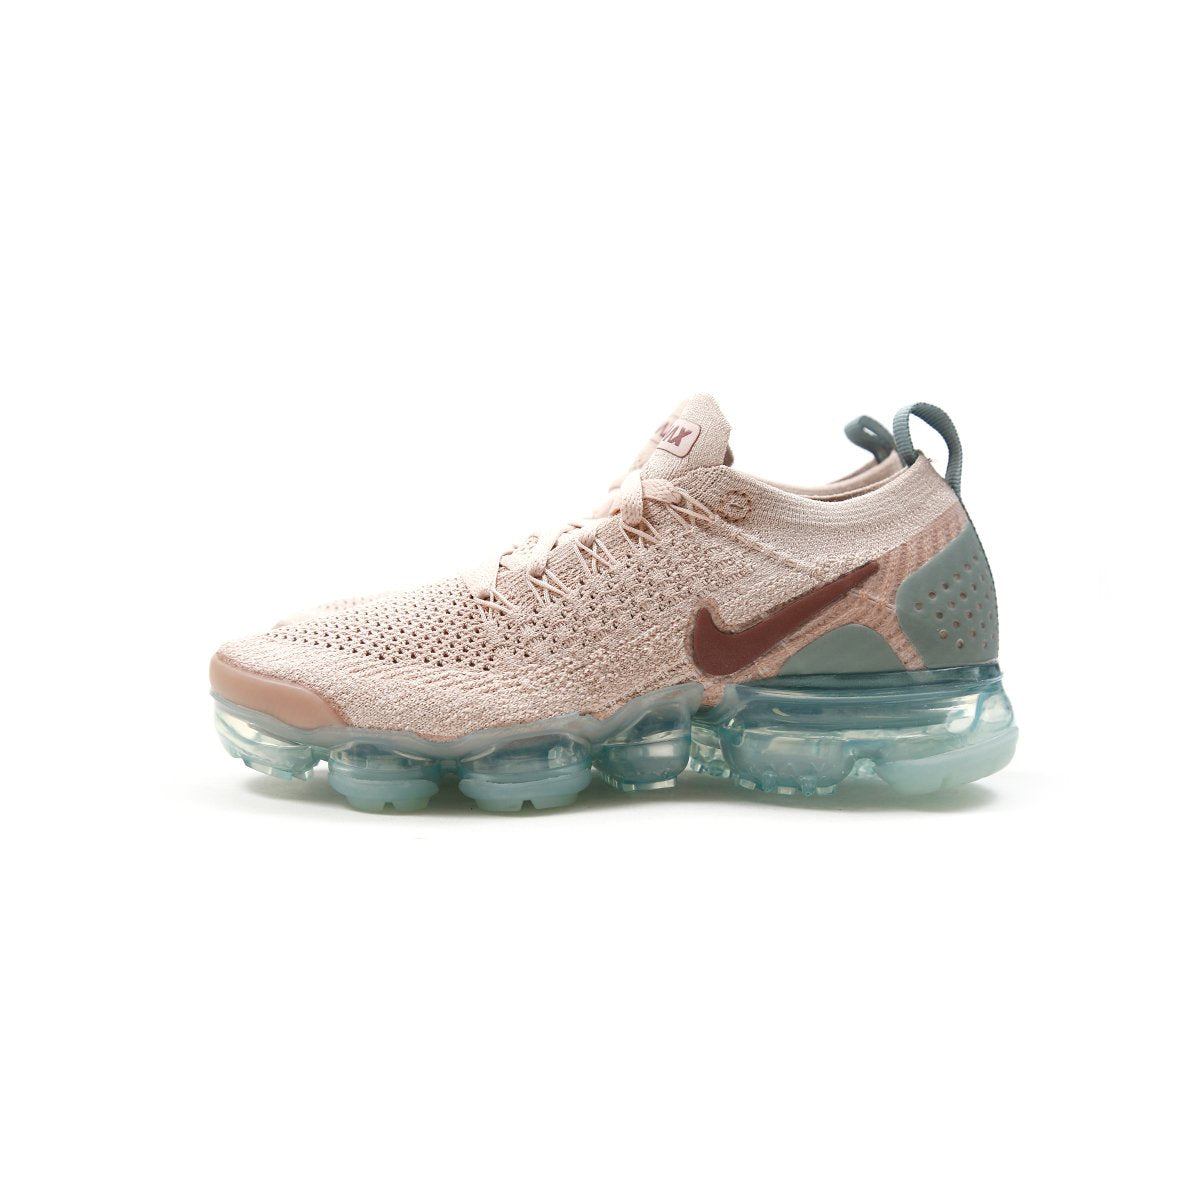 64b545ebc0f ... coupon for wholesale nike womens air vapormax flyknit 2 particle beige  smokey mauve mica green e5a60